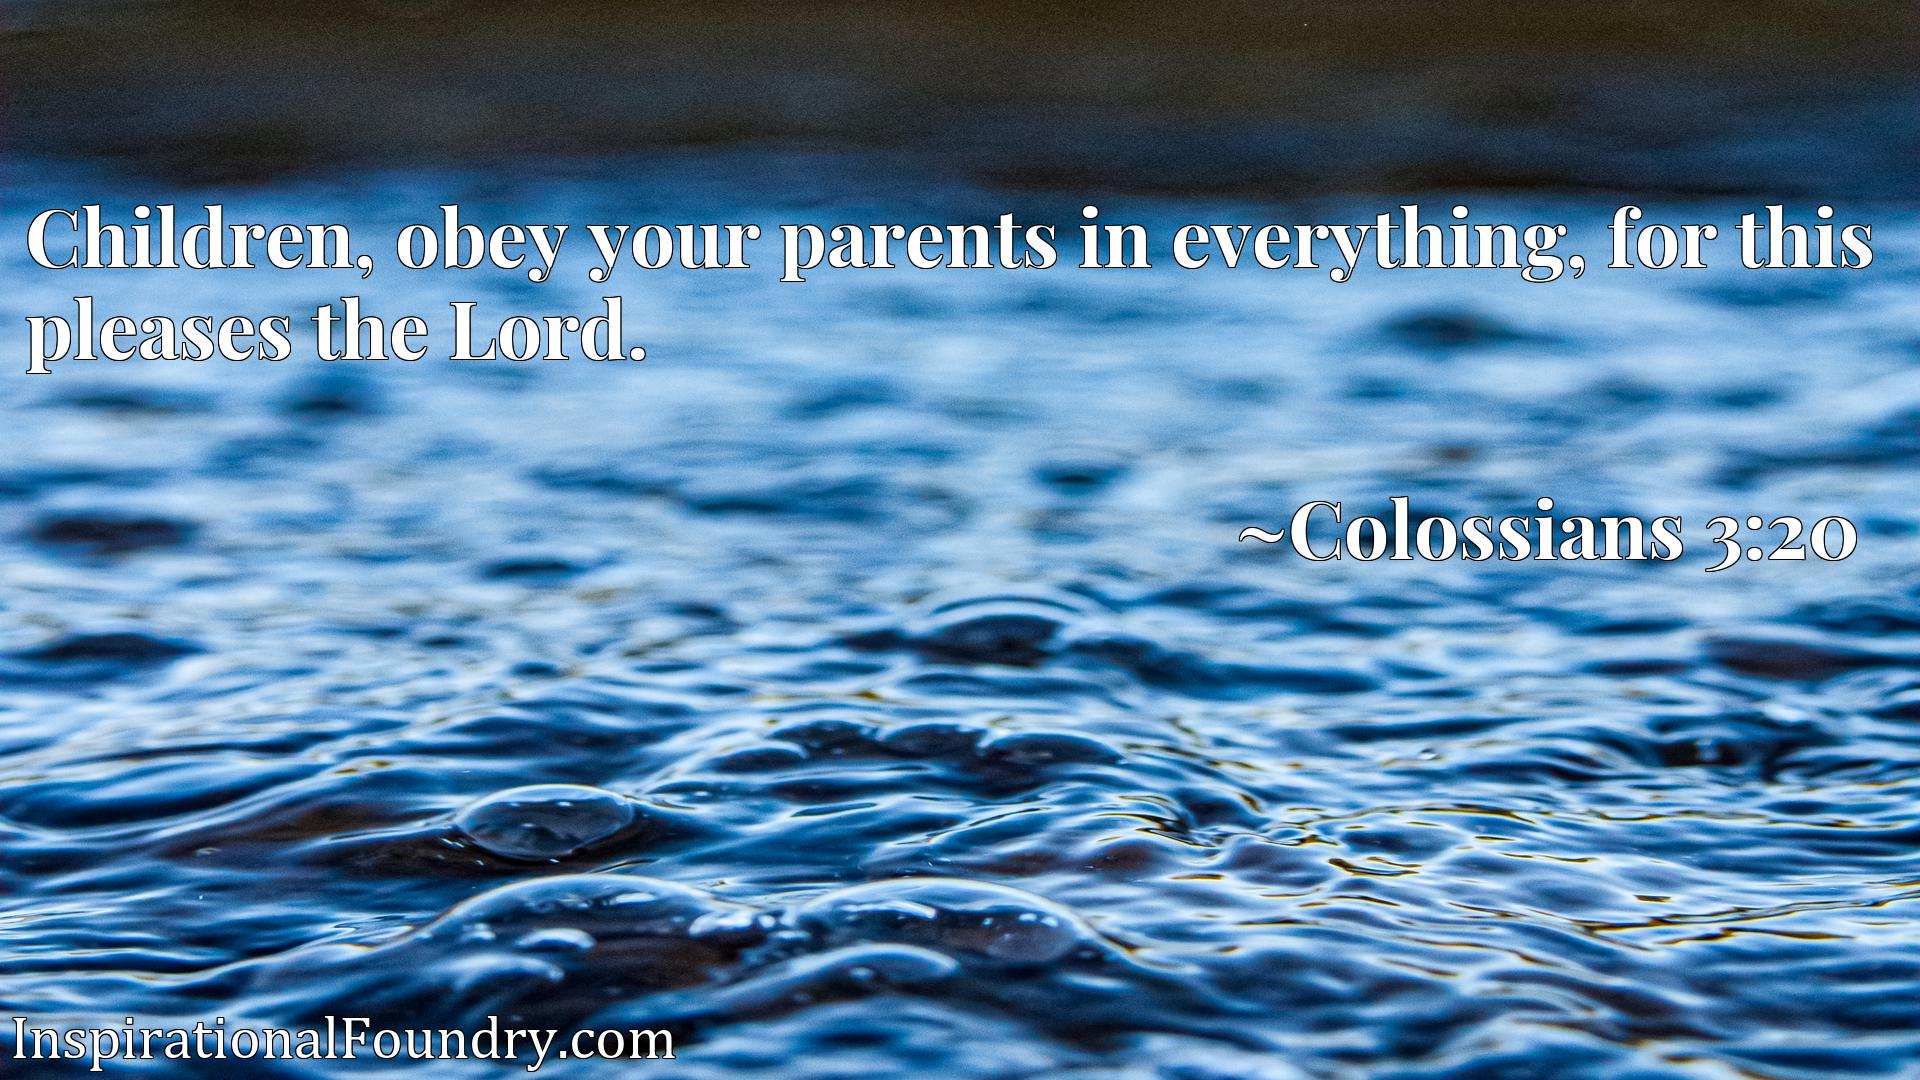 Children, obey your parents in everything, for this pleases the Lord.